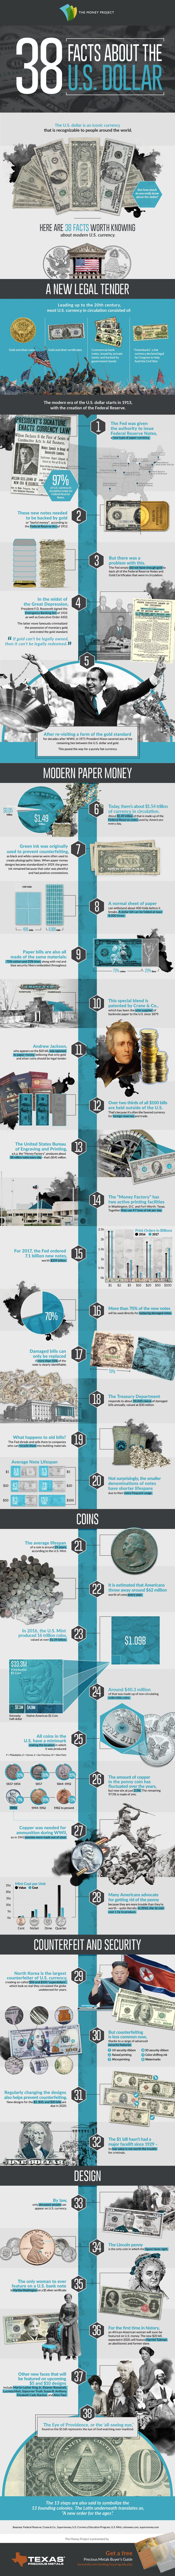 38 Things You Didn't Know About the US Dollar - Infographic